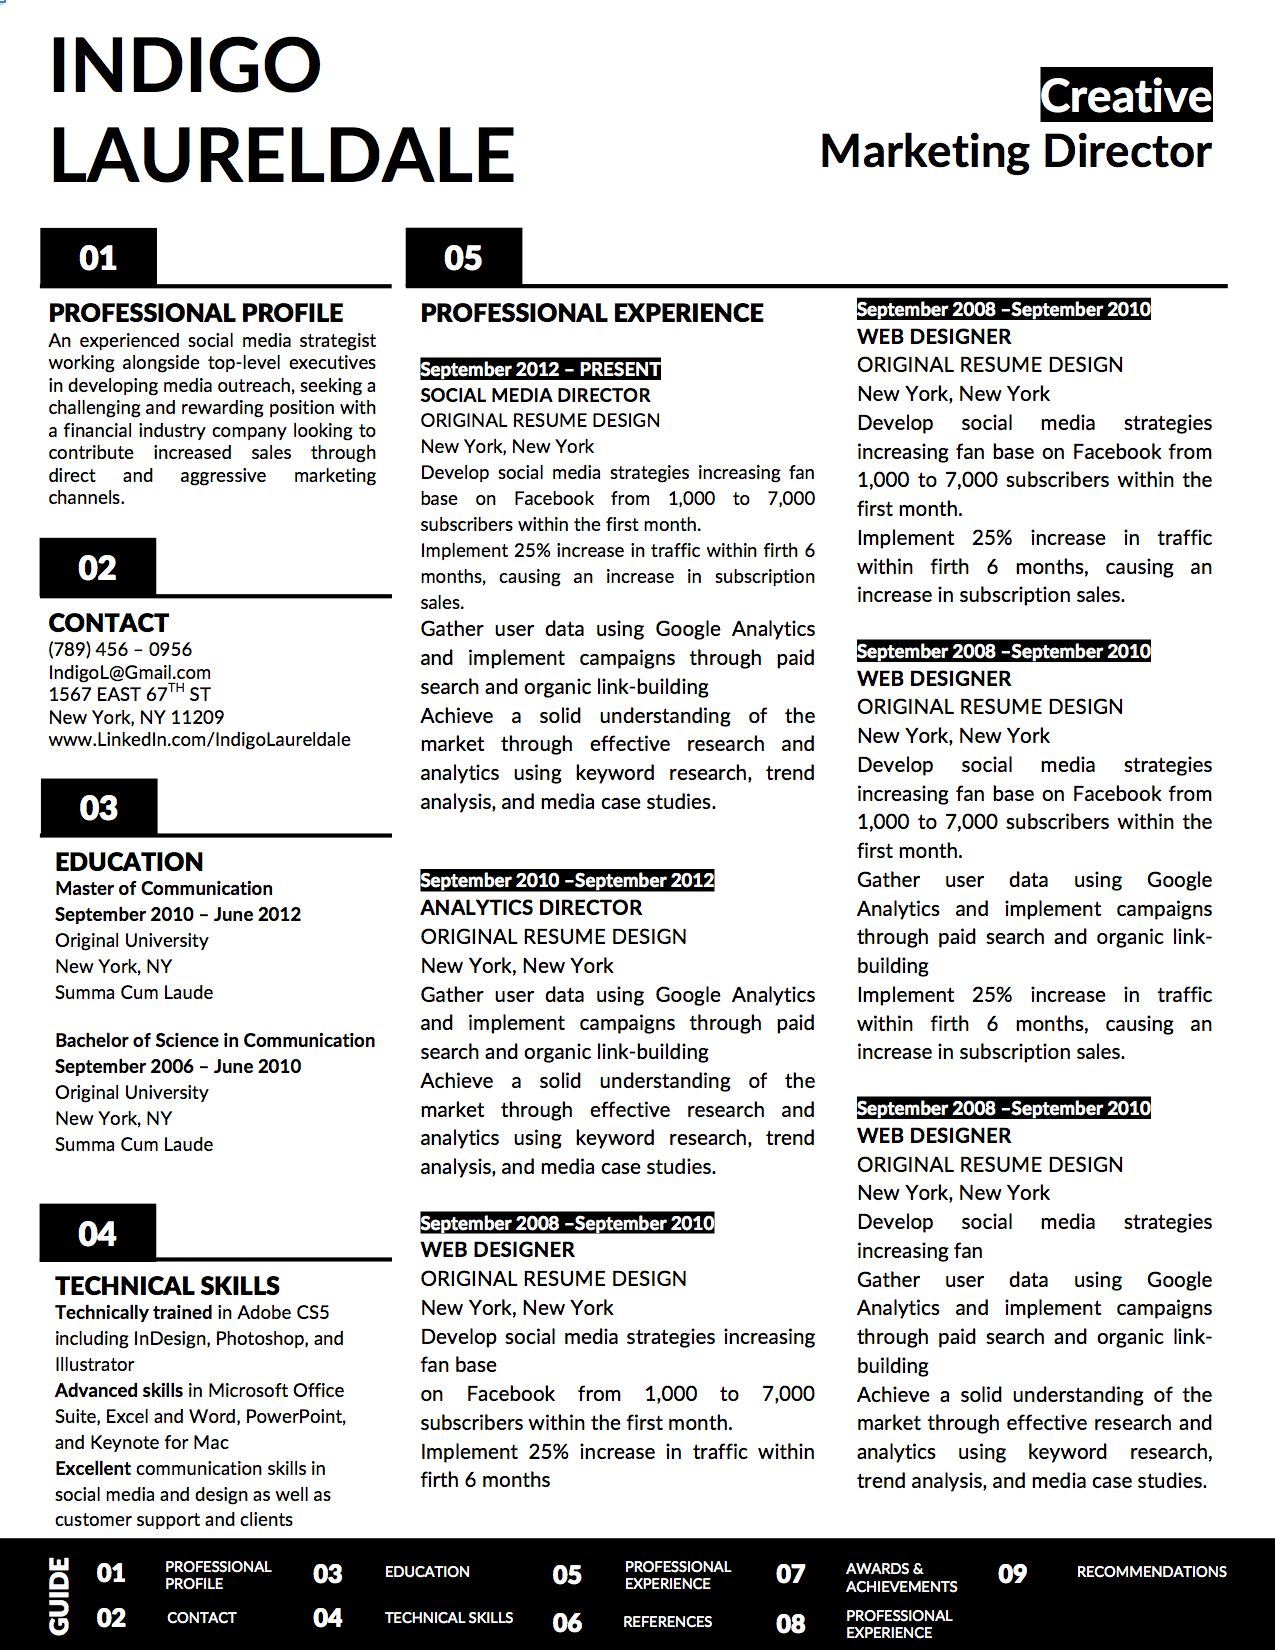 Indigo lauderdale resume 2page resume template for